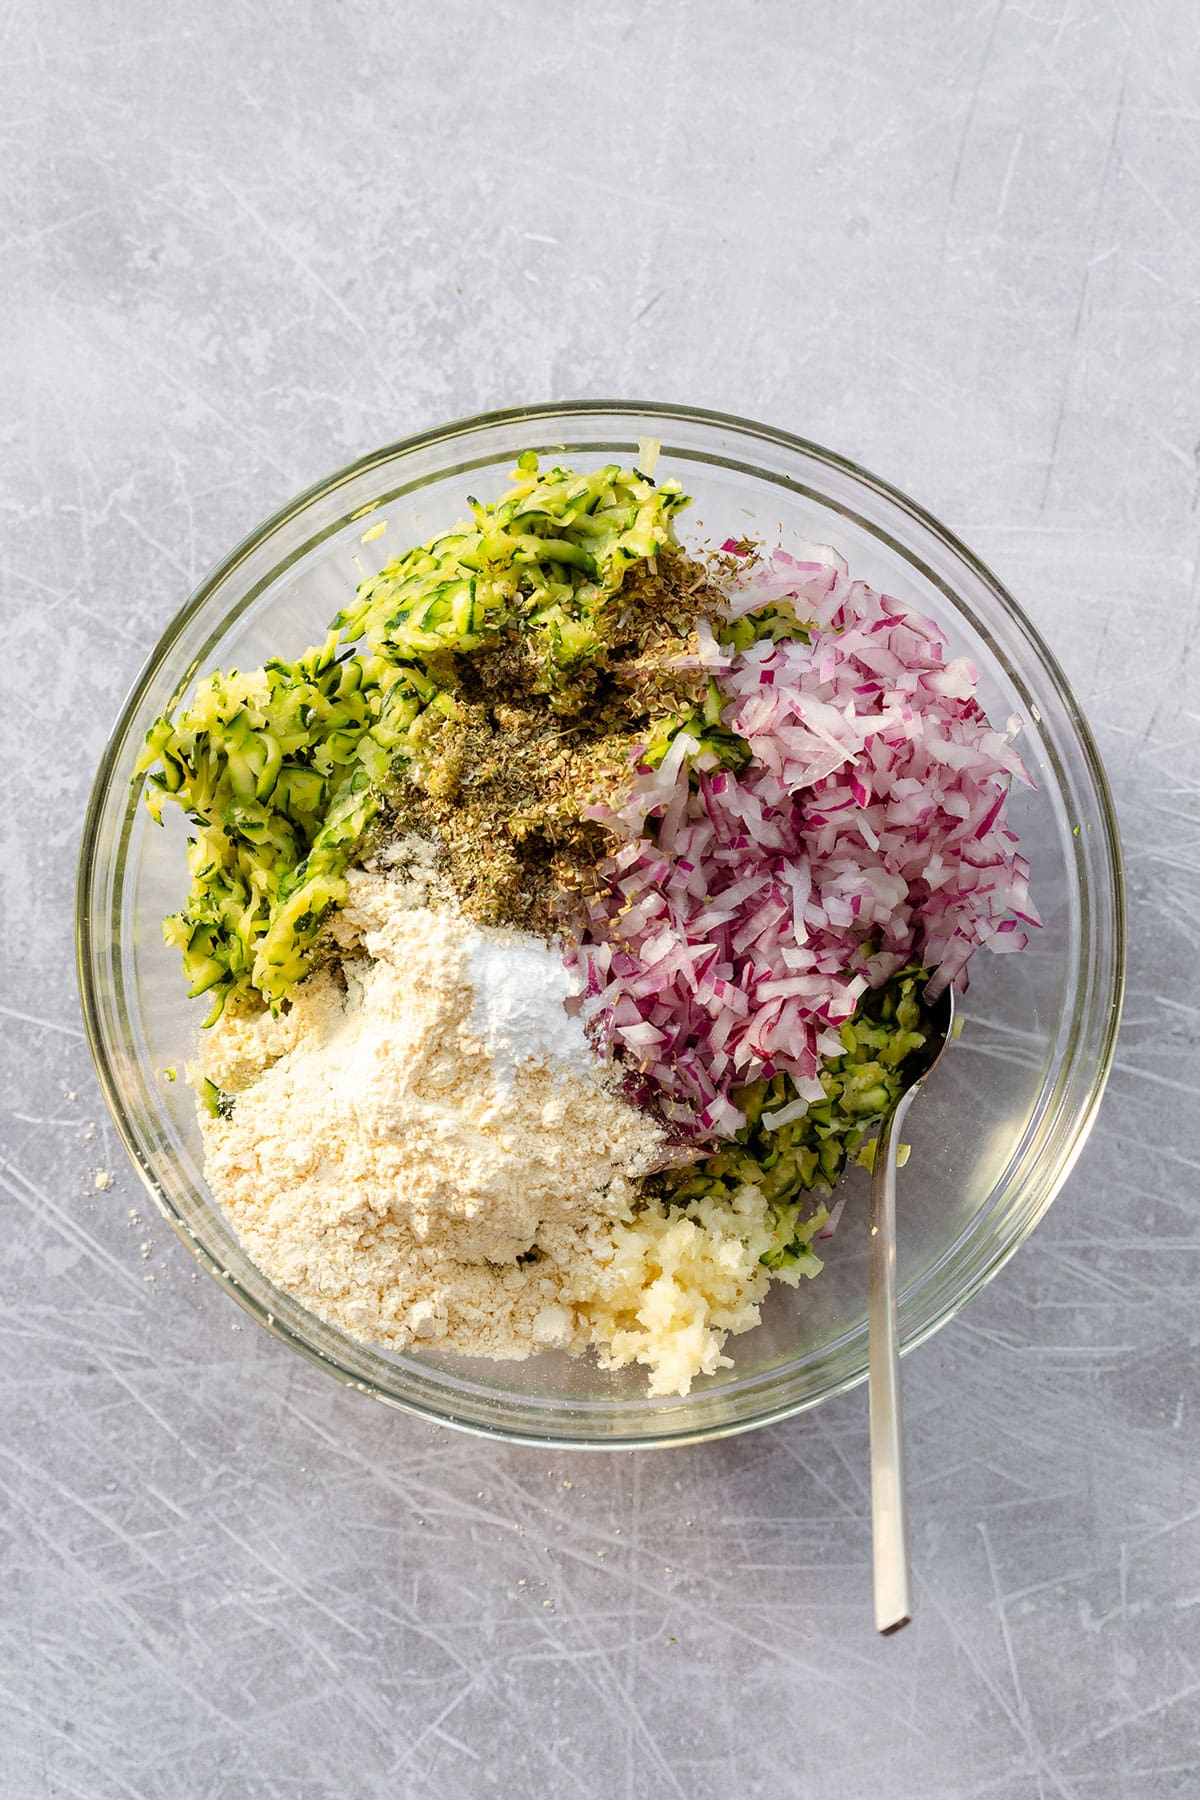 A glass bowl on a scratched steel background. In the bowl, there is grated zucchini chopped red onion, dried marjoram, and chickpea flour.